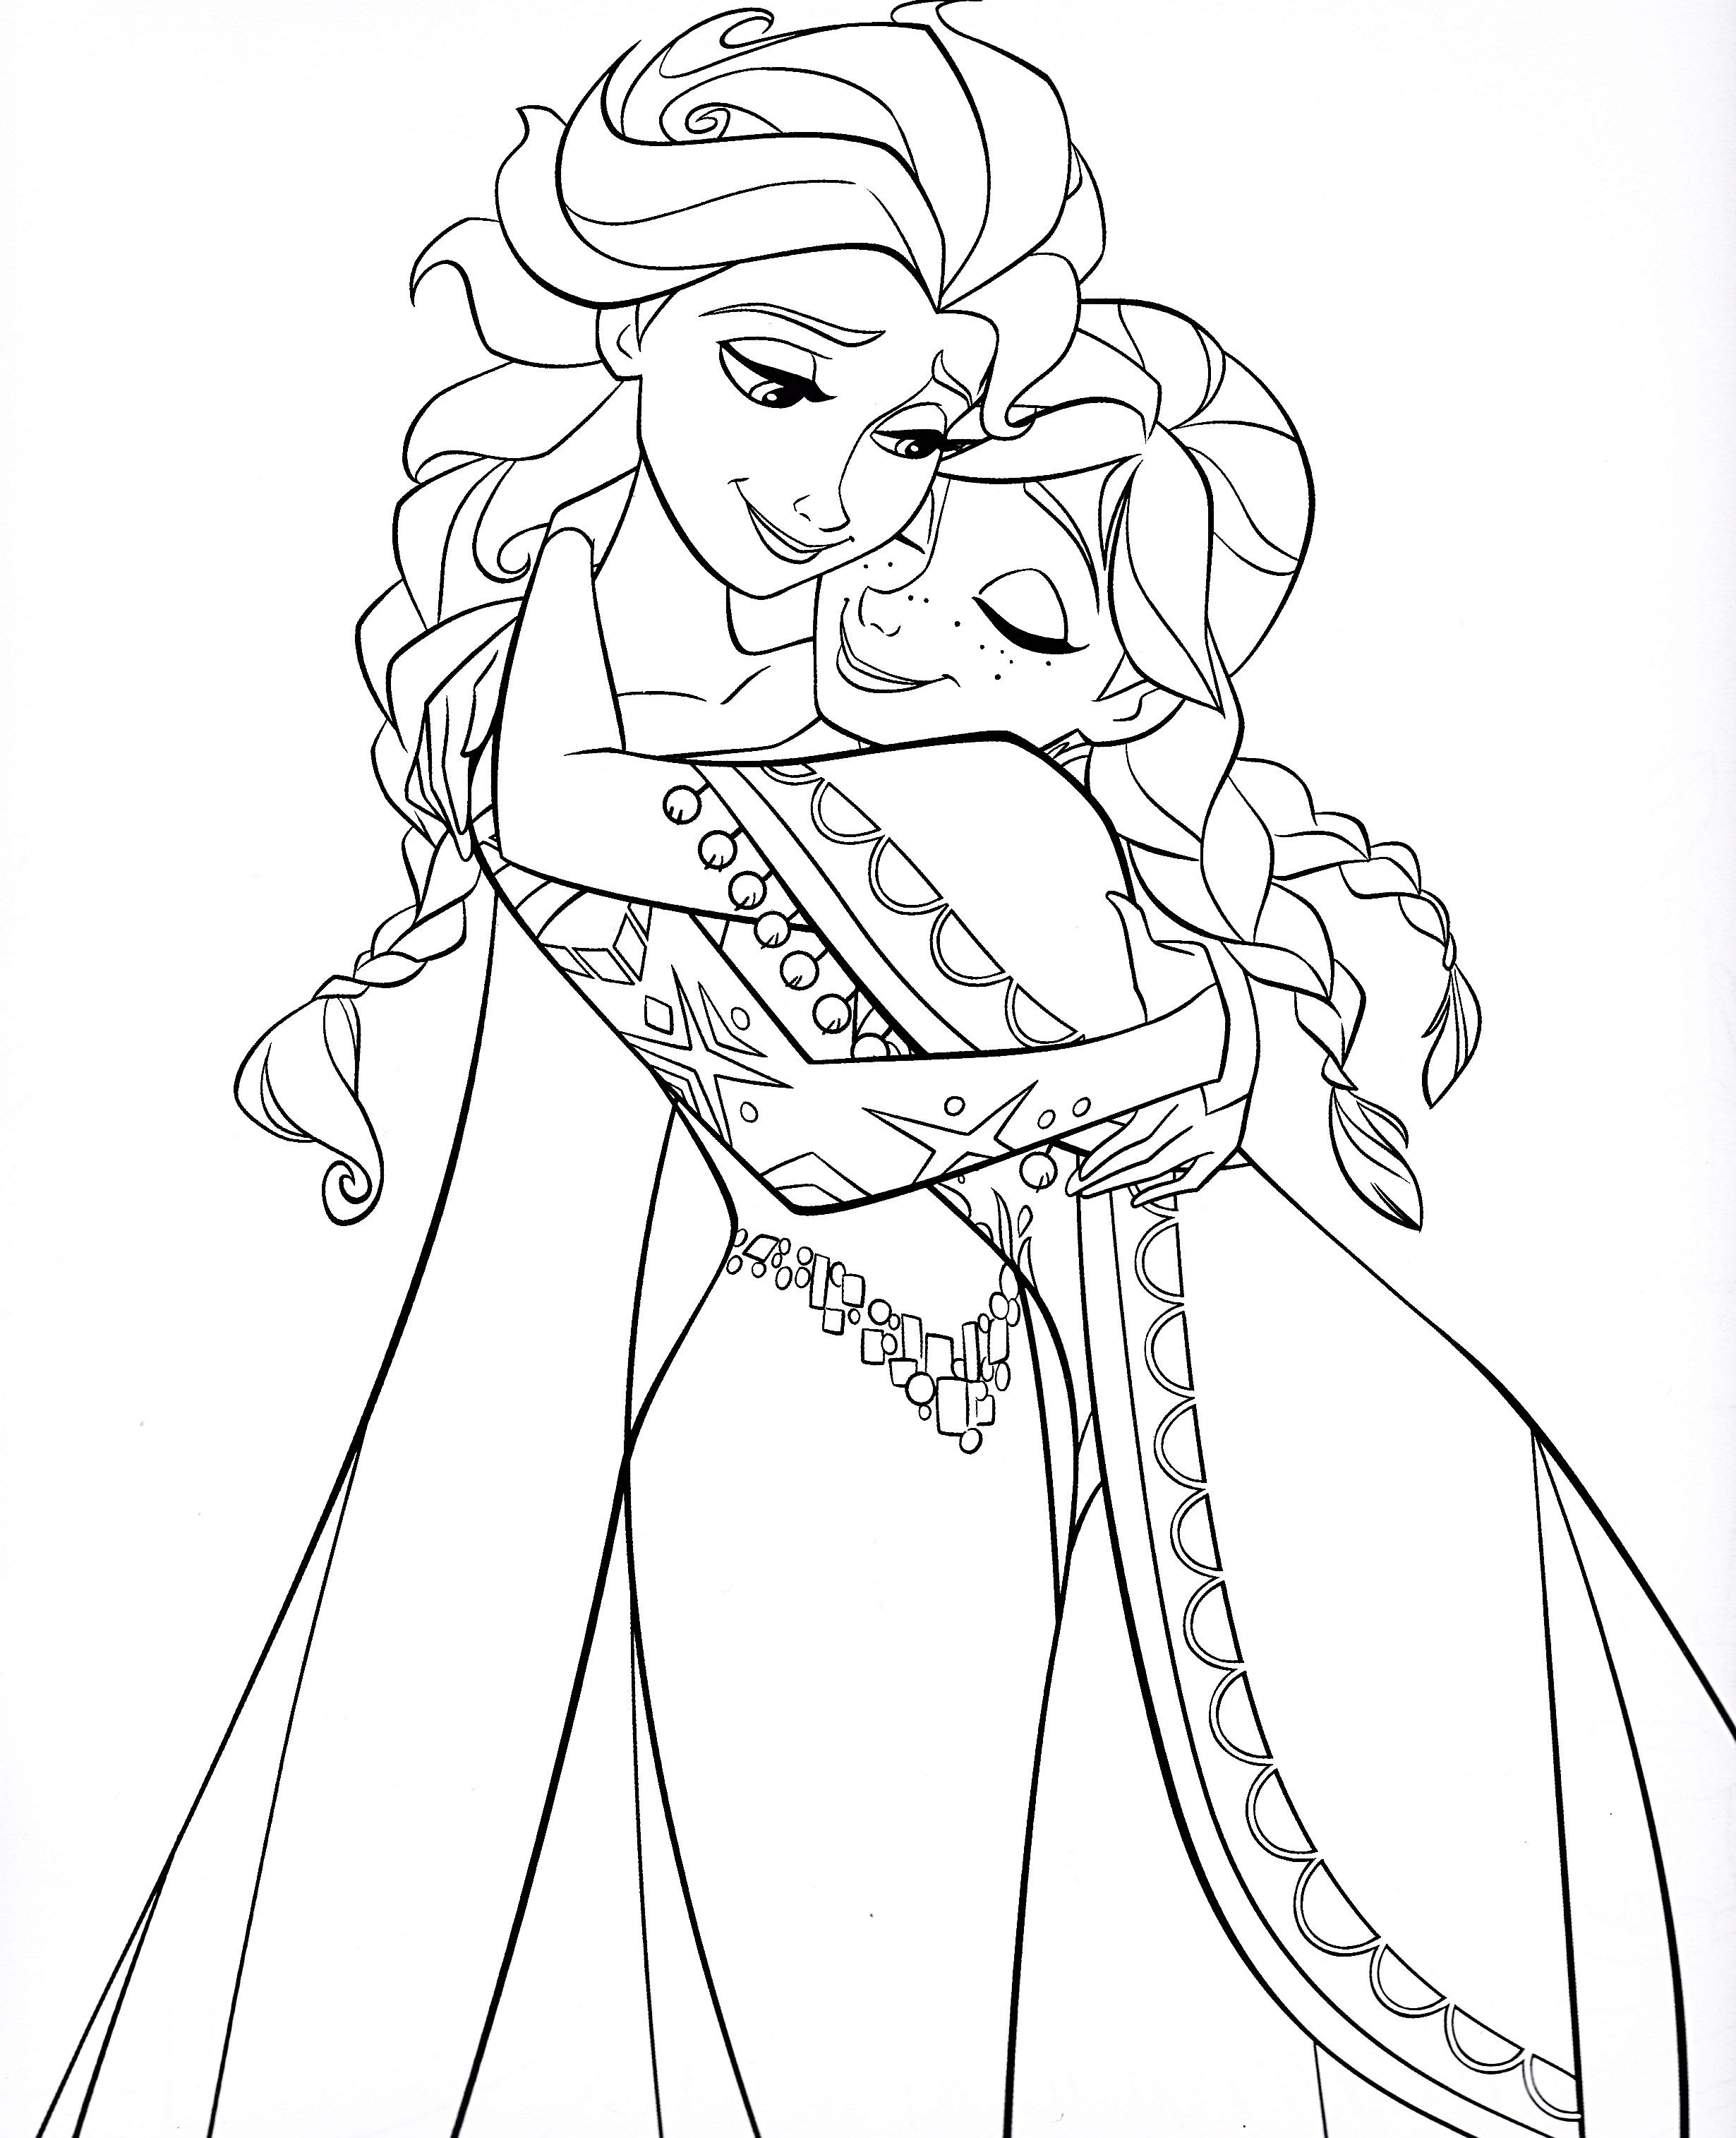 Queen Elsa Of Arendelle Coloring Pages For Girls Gambar Simpel